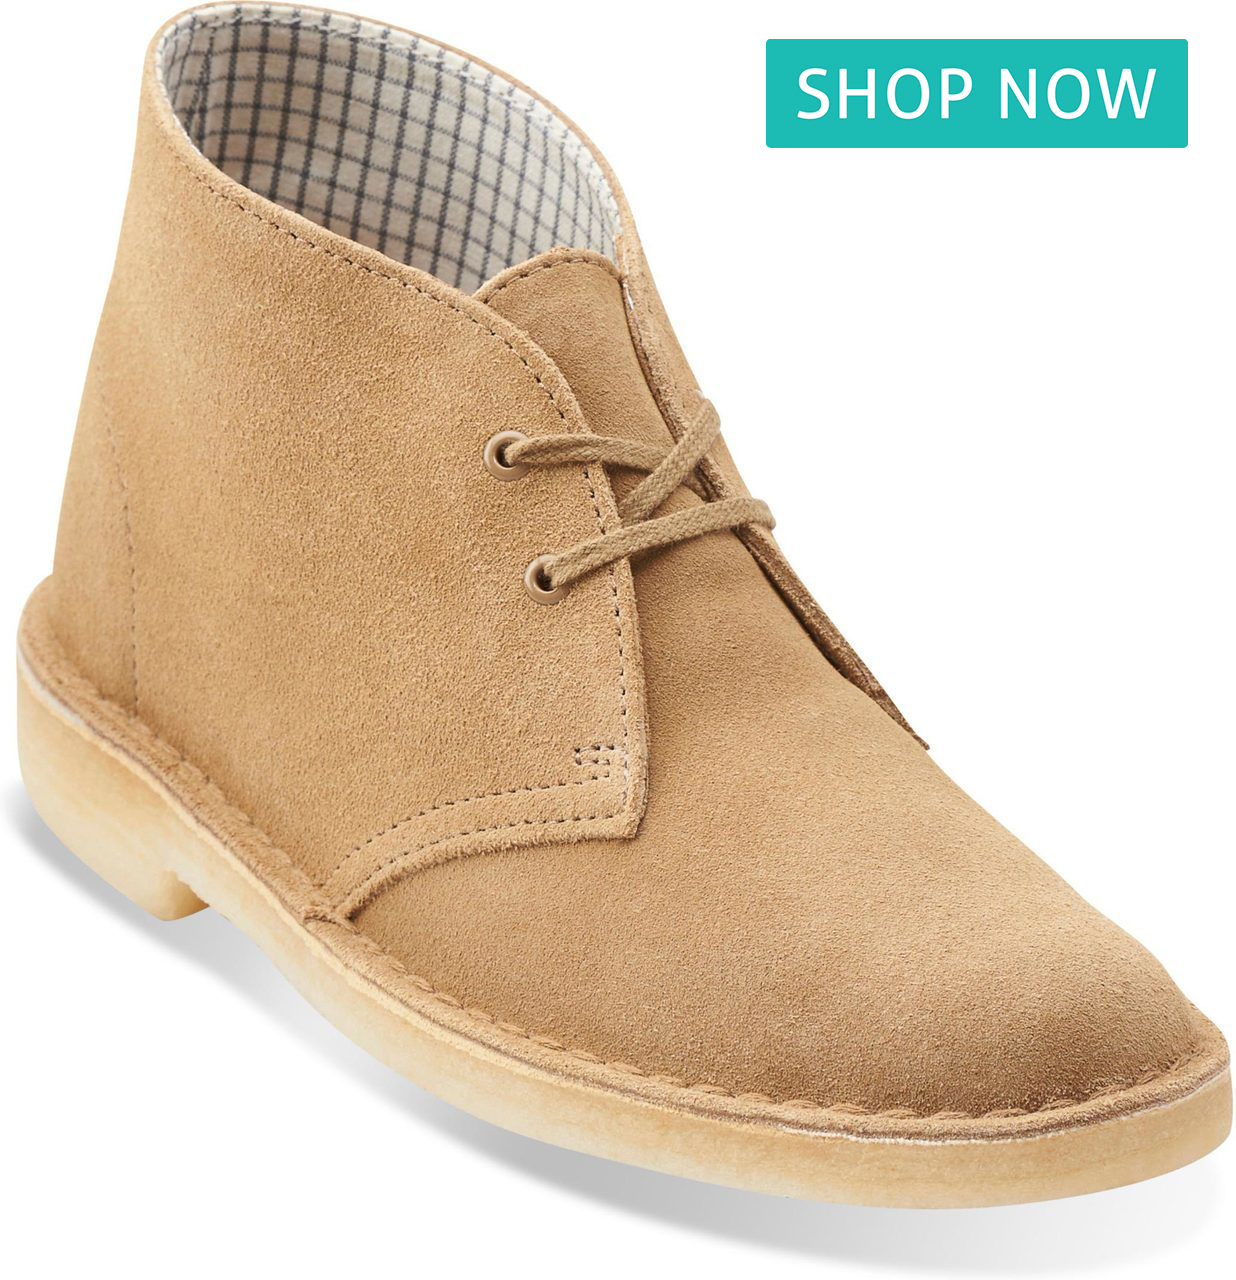 Clarks Women's Desert Boots in Oakwood Suede